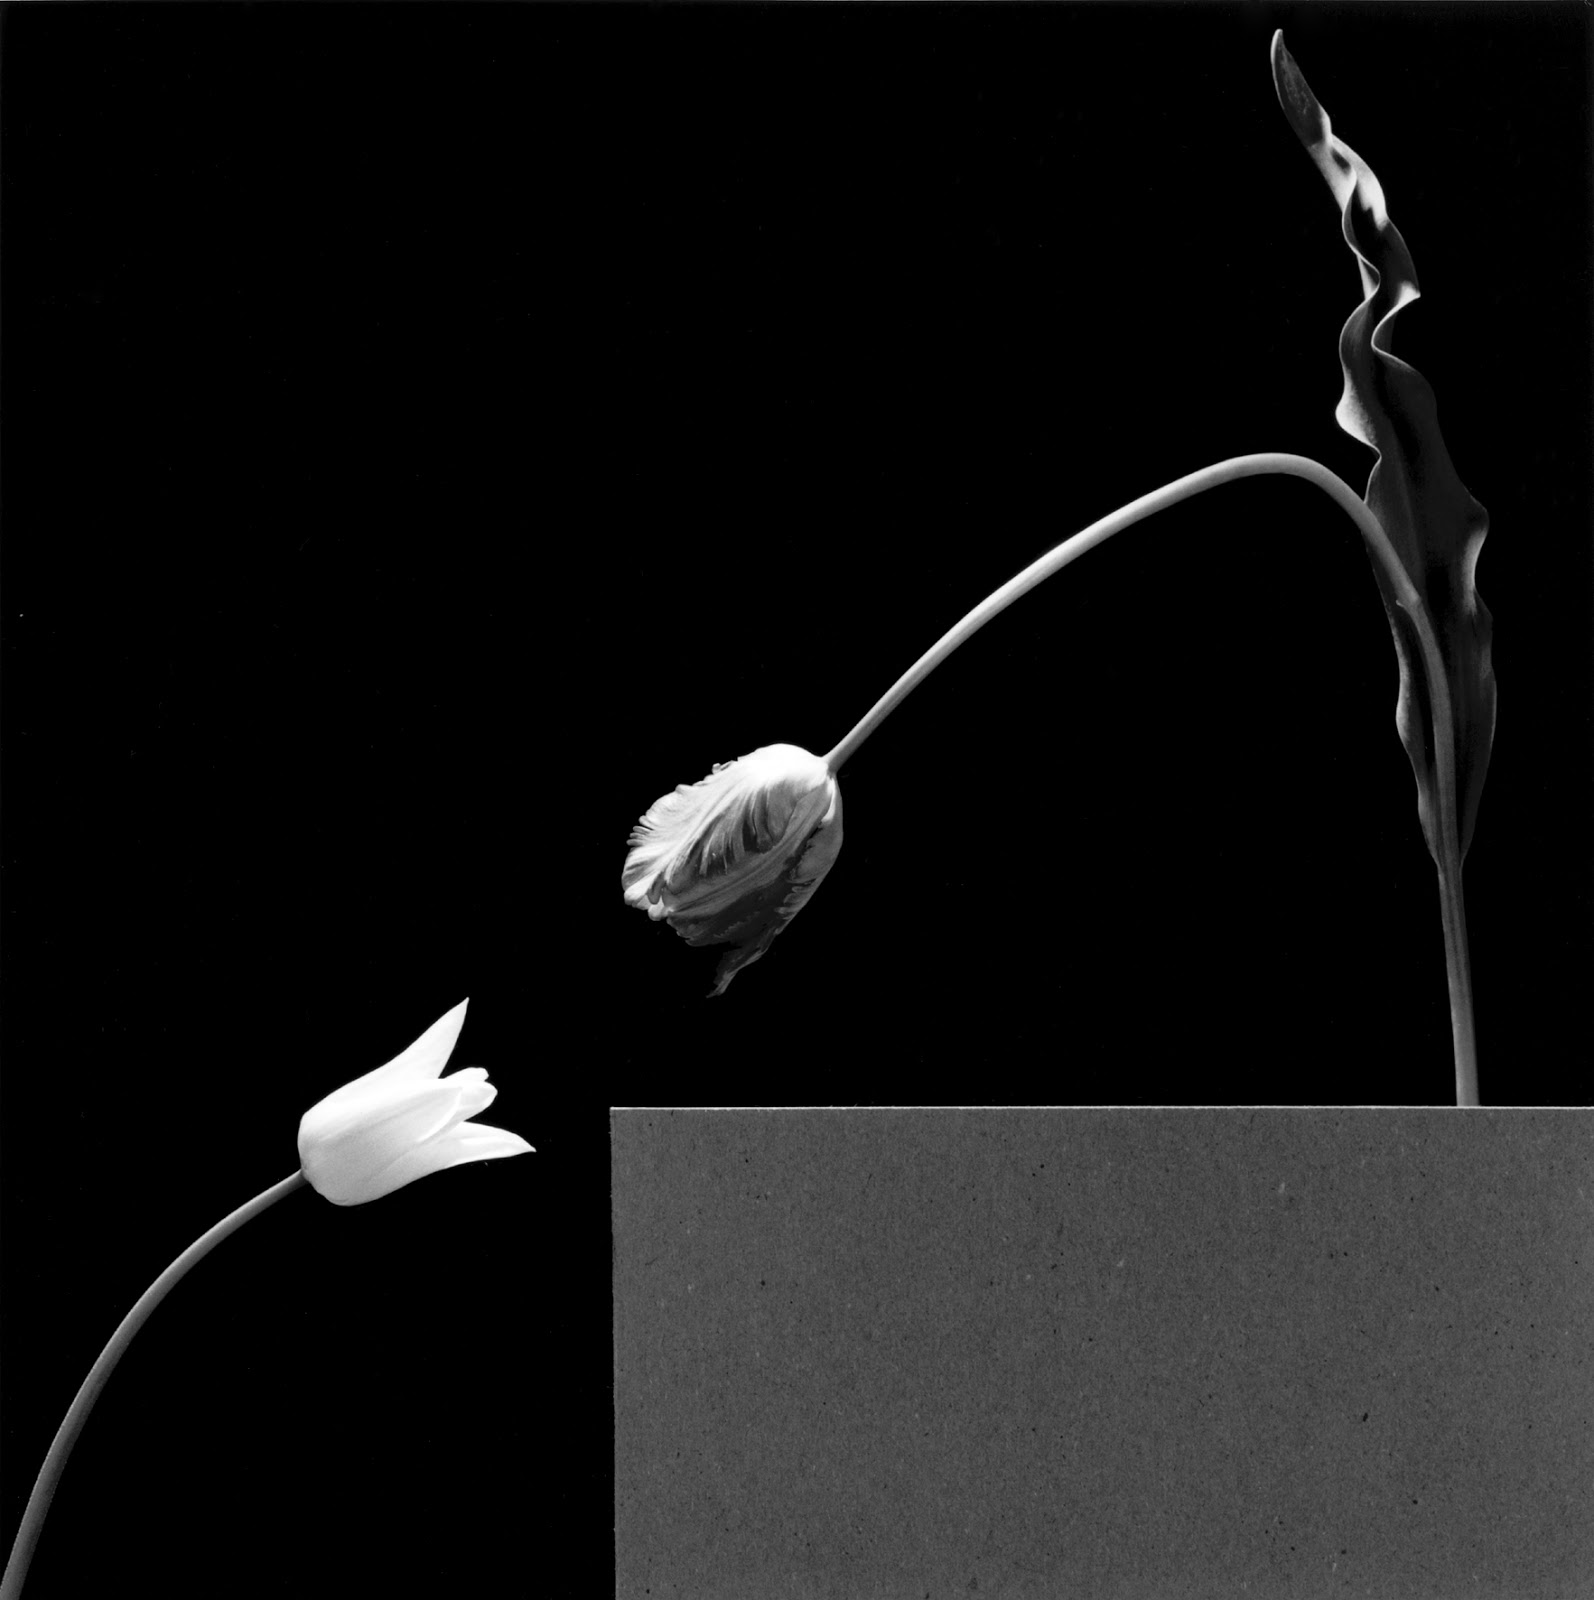 robert_mapplethorpe_two_tulips_1984.jpg